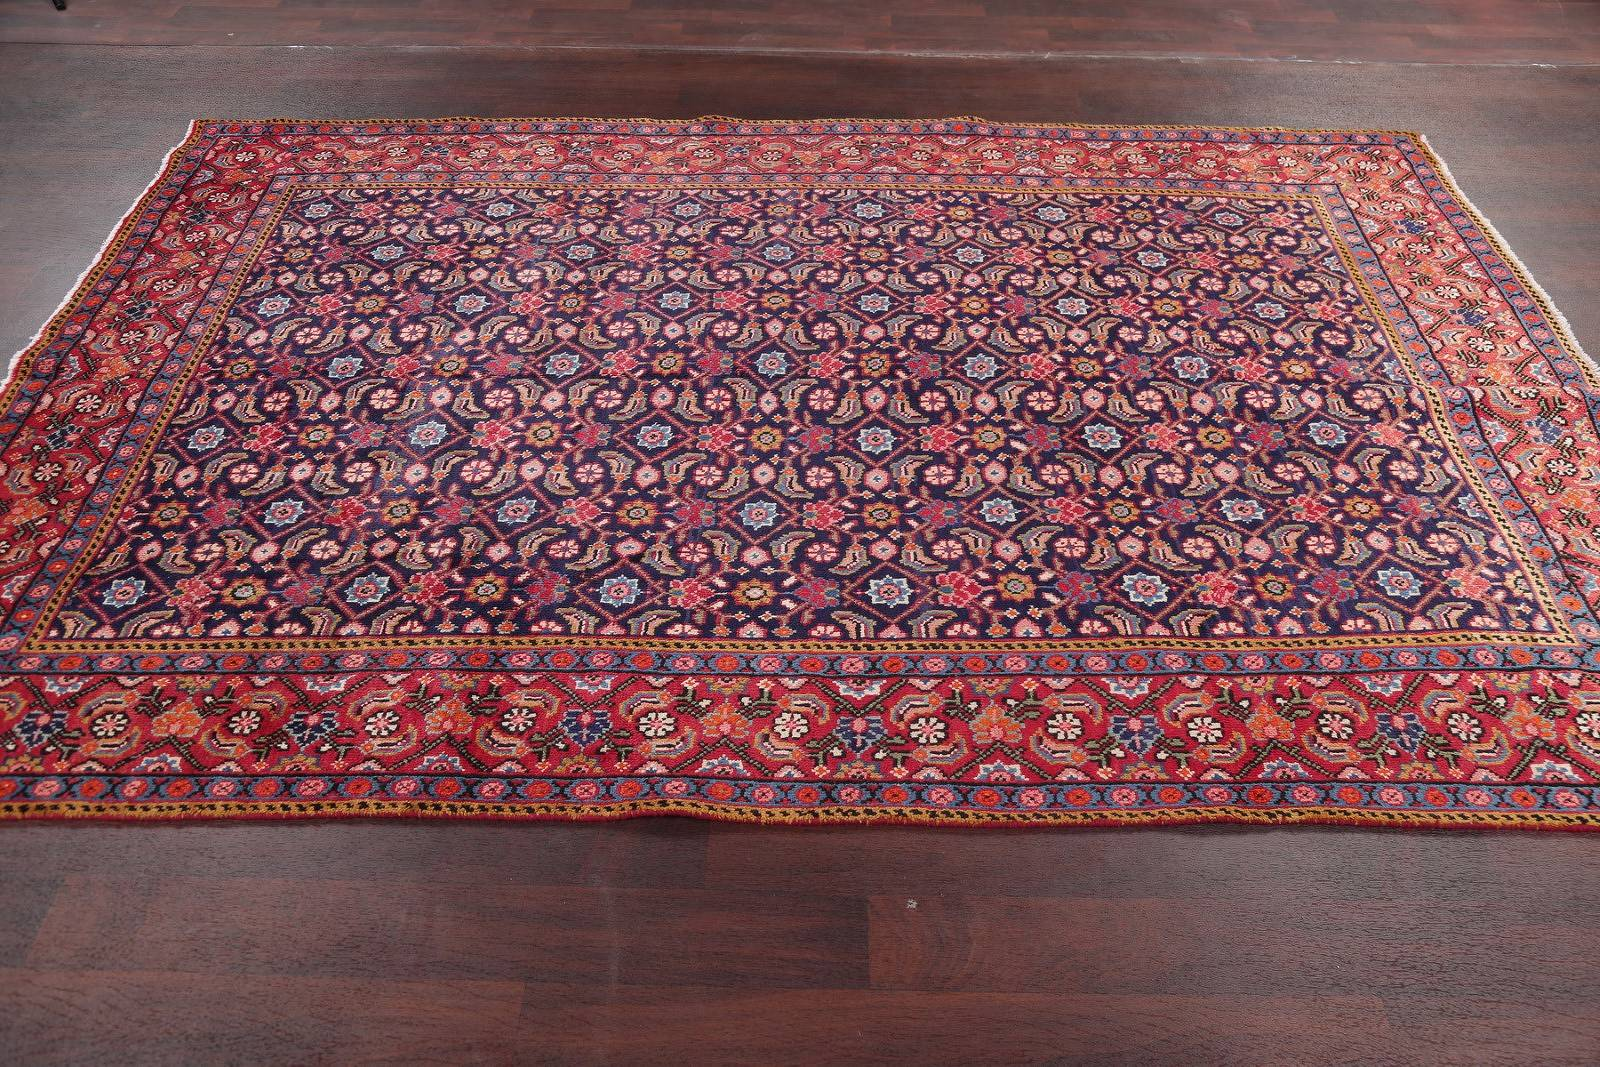 Hand-Knotted Navy Blue All-Over Floral Mahal Persian Area Rug Wool 6x10